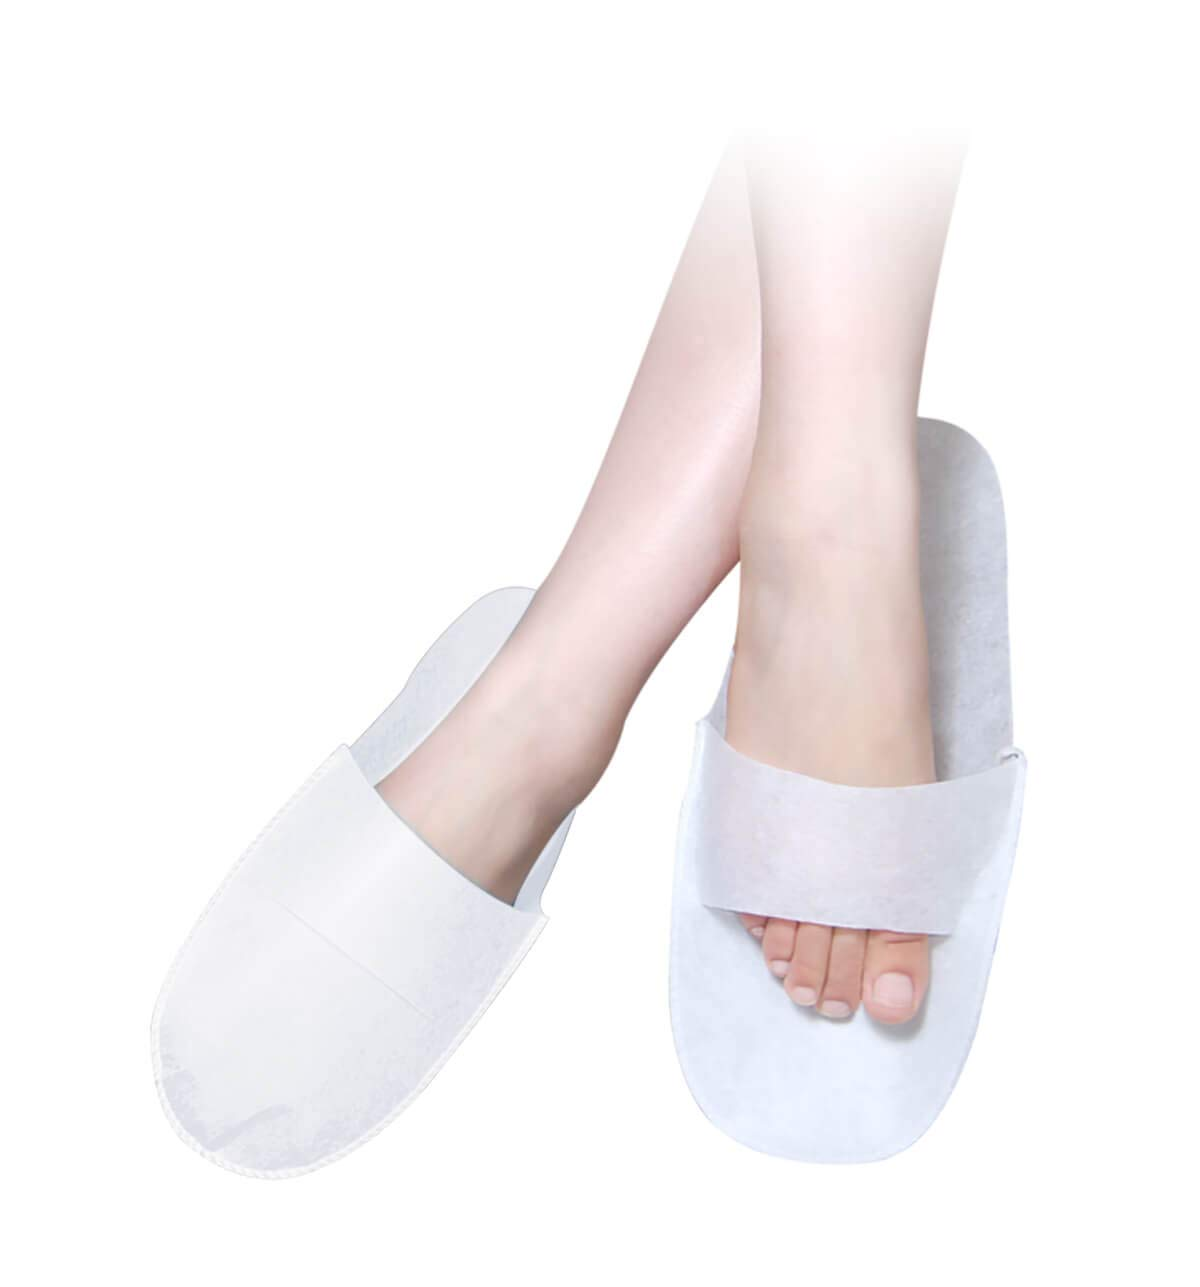 Appearus Disposable Pedicure Treatment All items free Reservation shipping Guard Slipper-like Shap